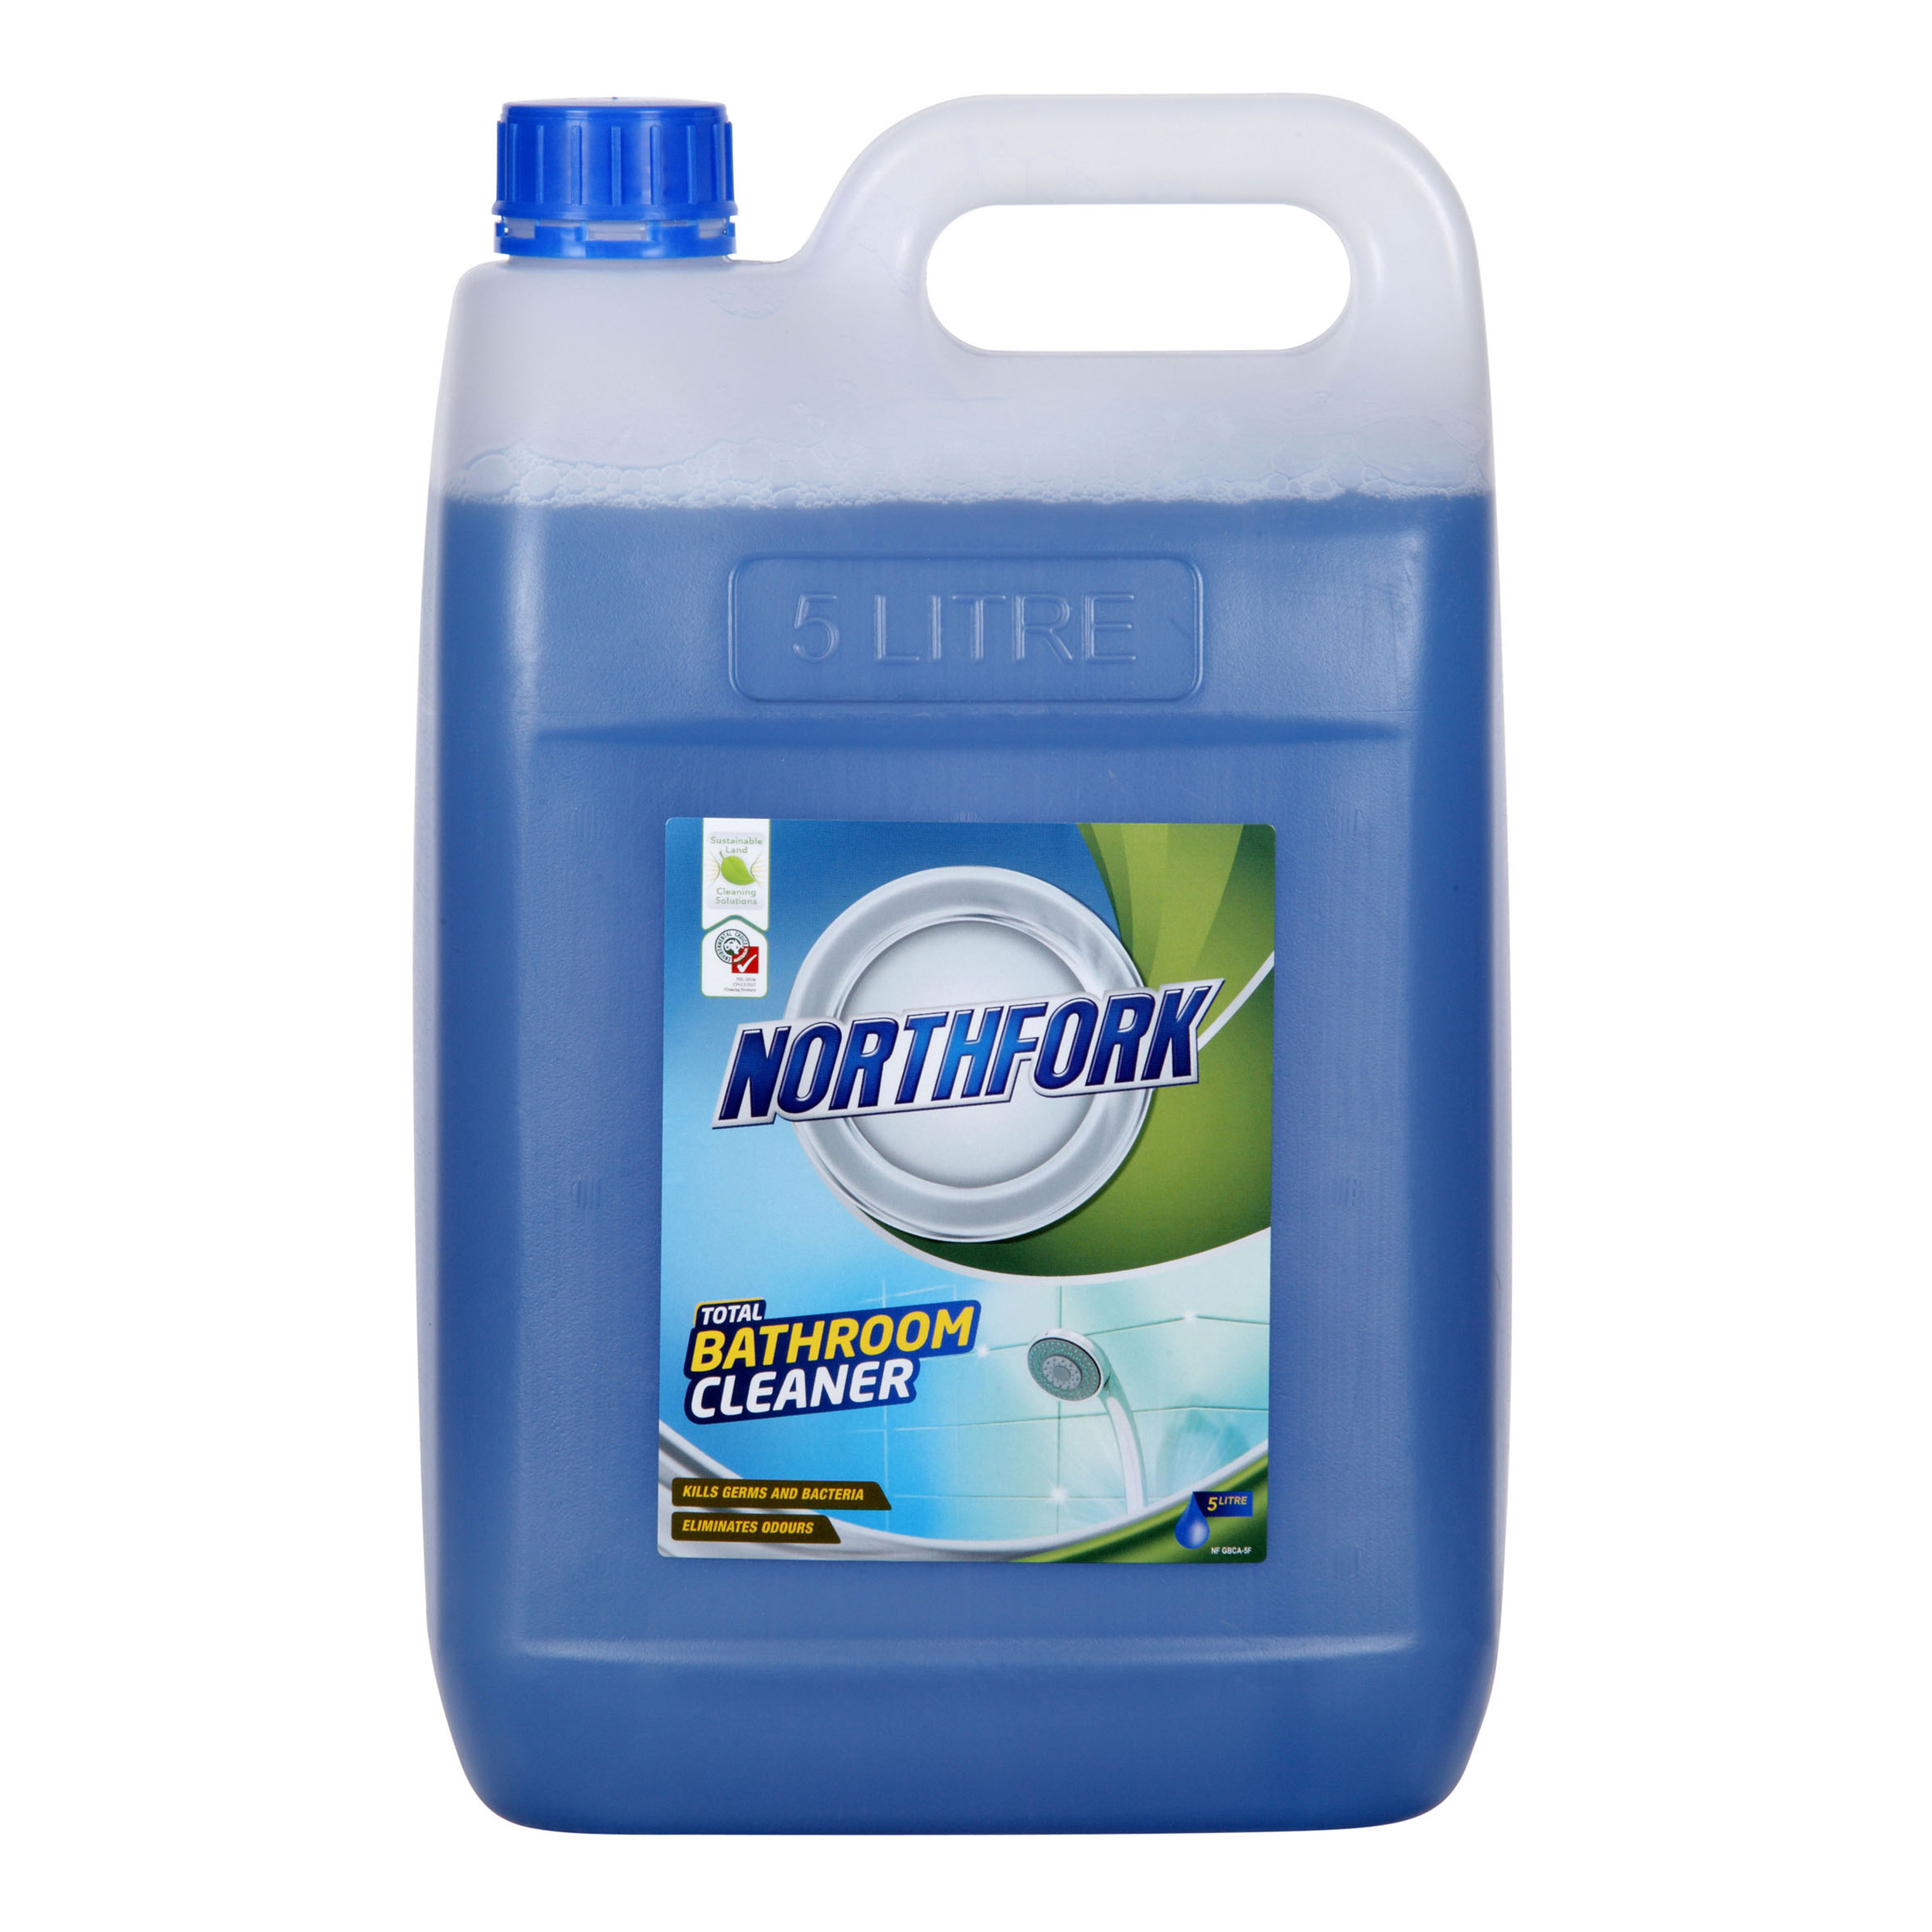 Northfork GECA Bathroom Cleaner